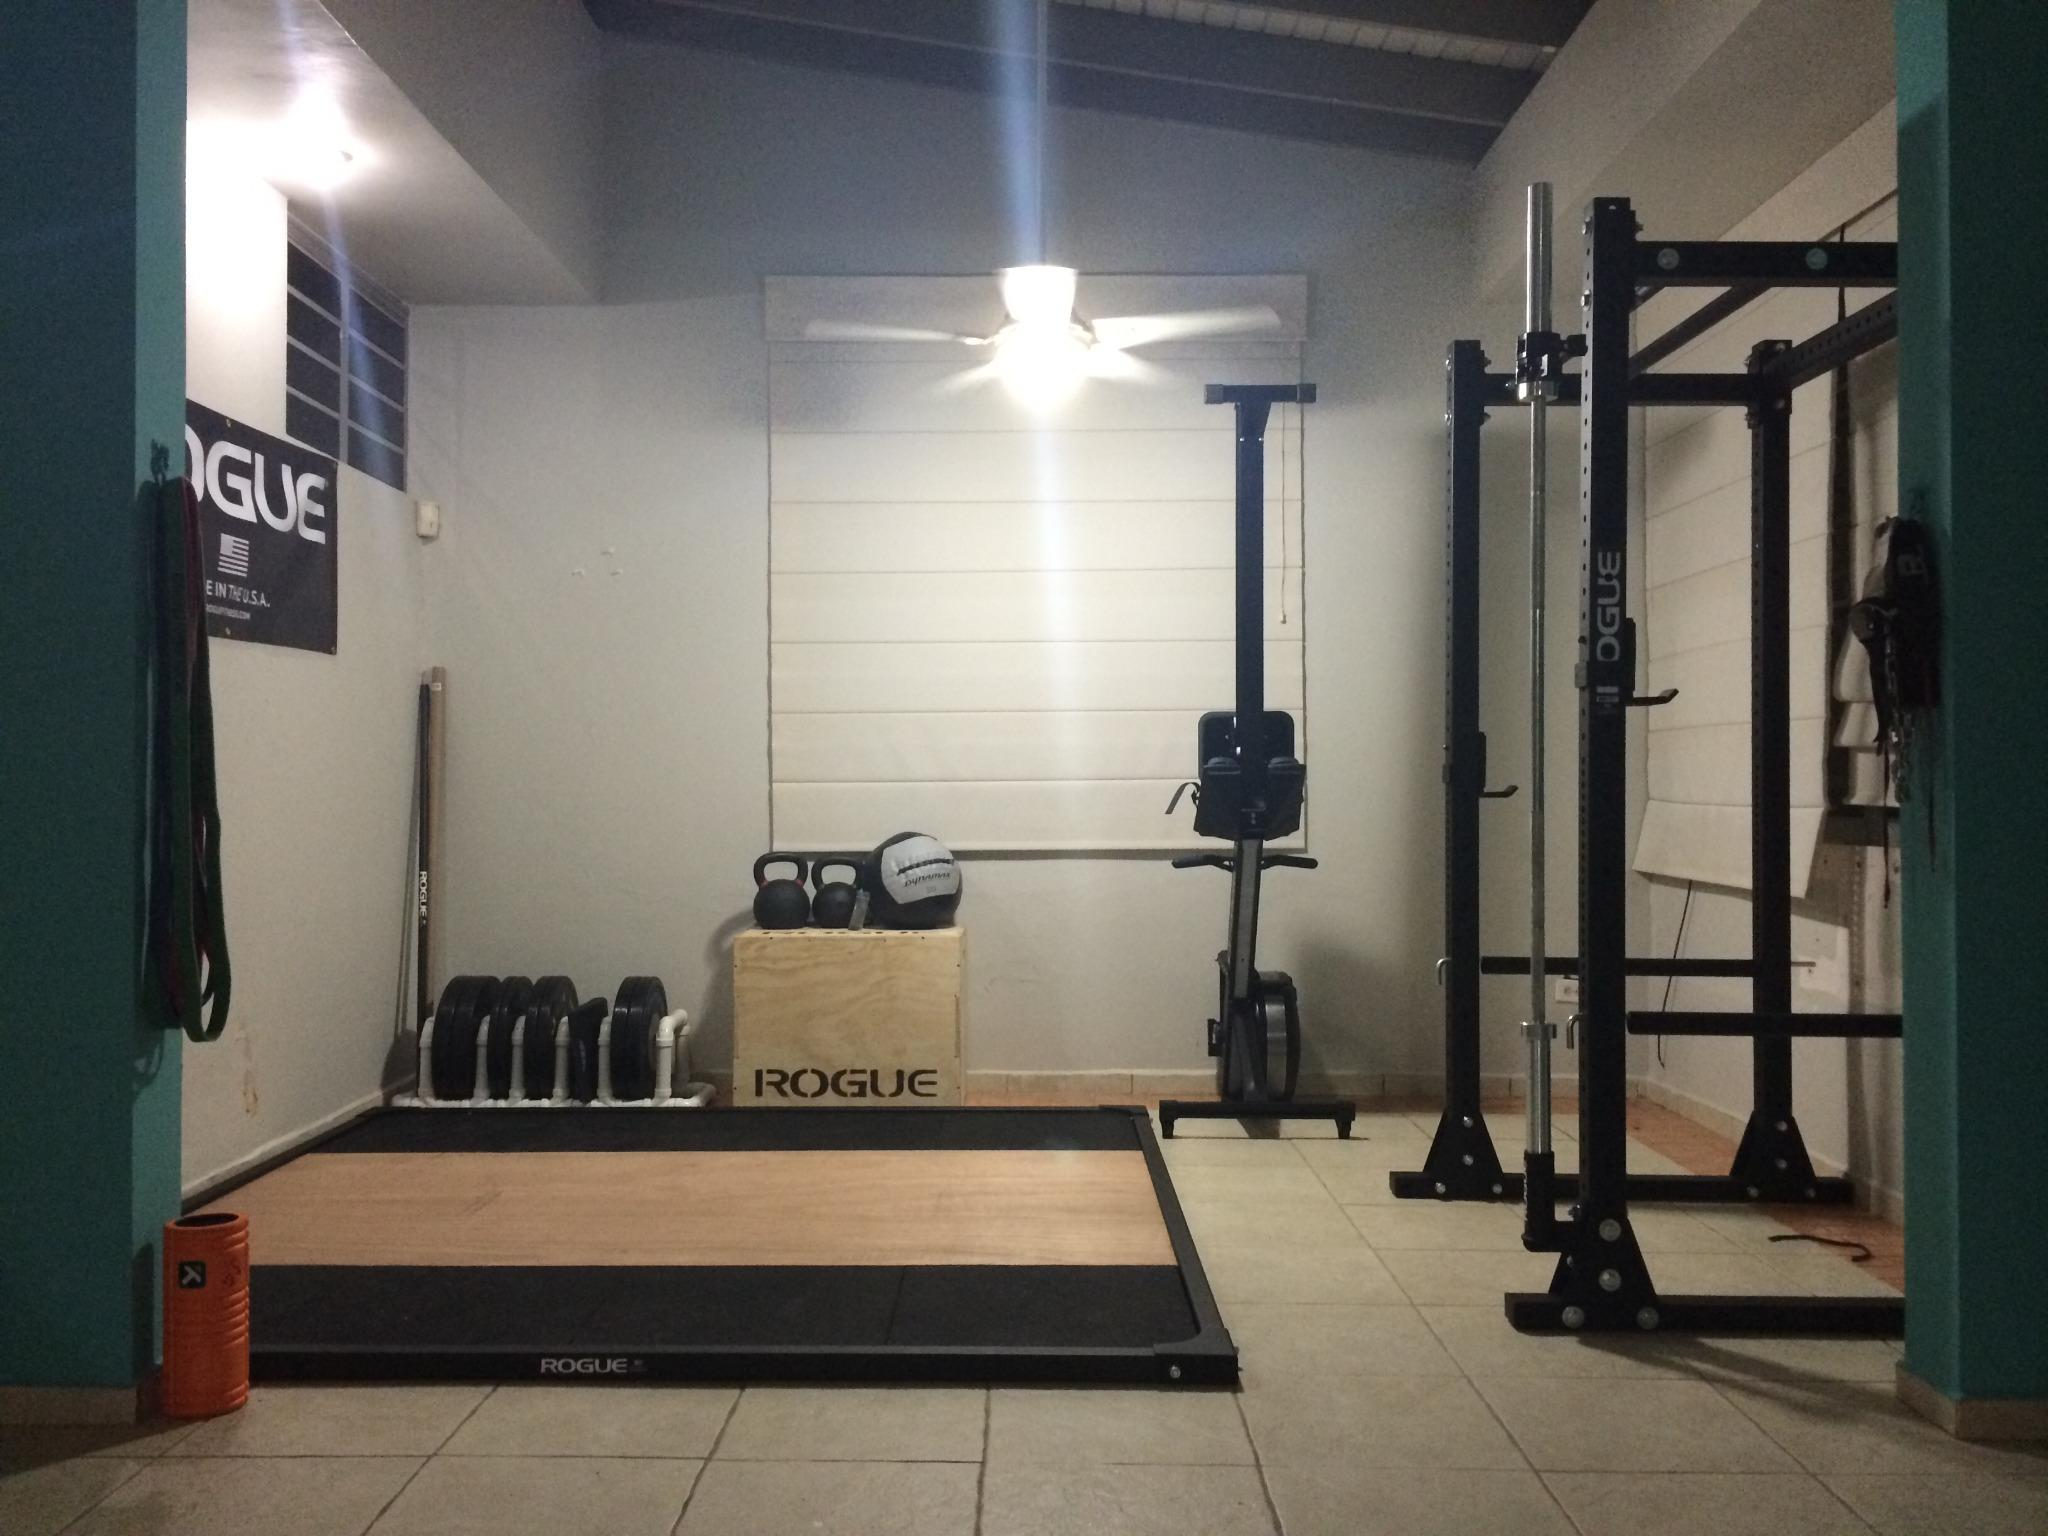 Awesome Rogue Garage Gym Ideas Collections